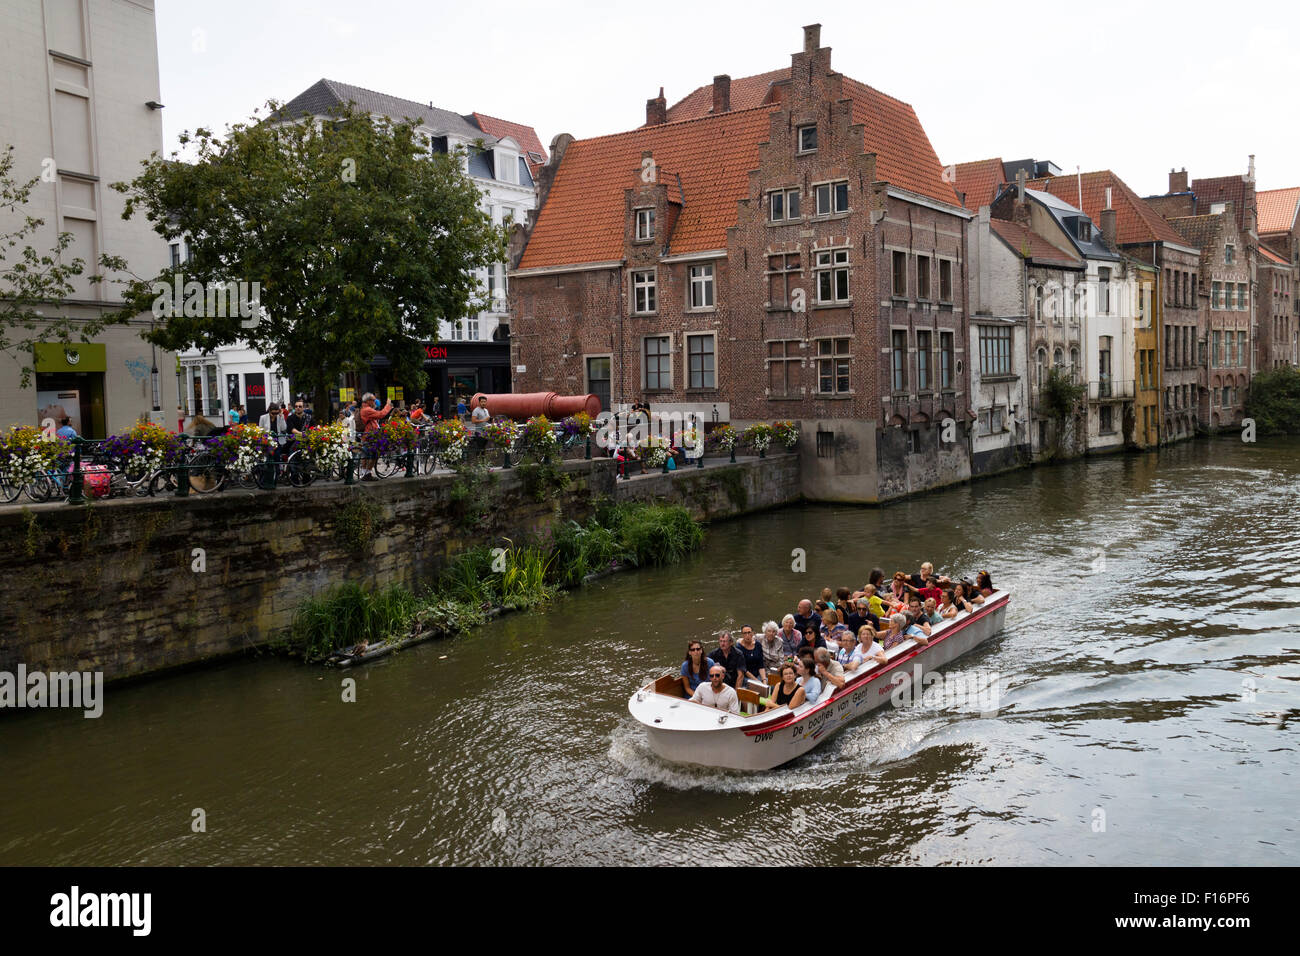 Sightseeing boat with tourists on the river Lye in Ghend, Belgium - Stock Image